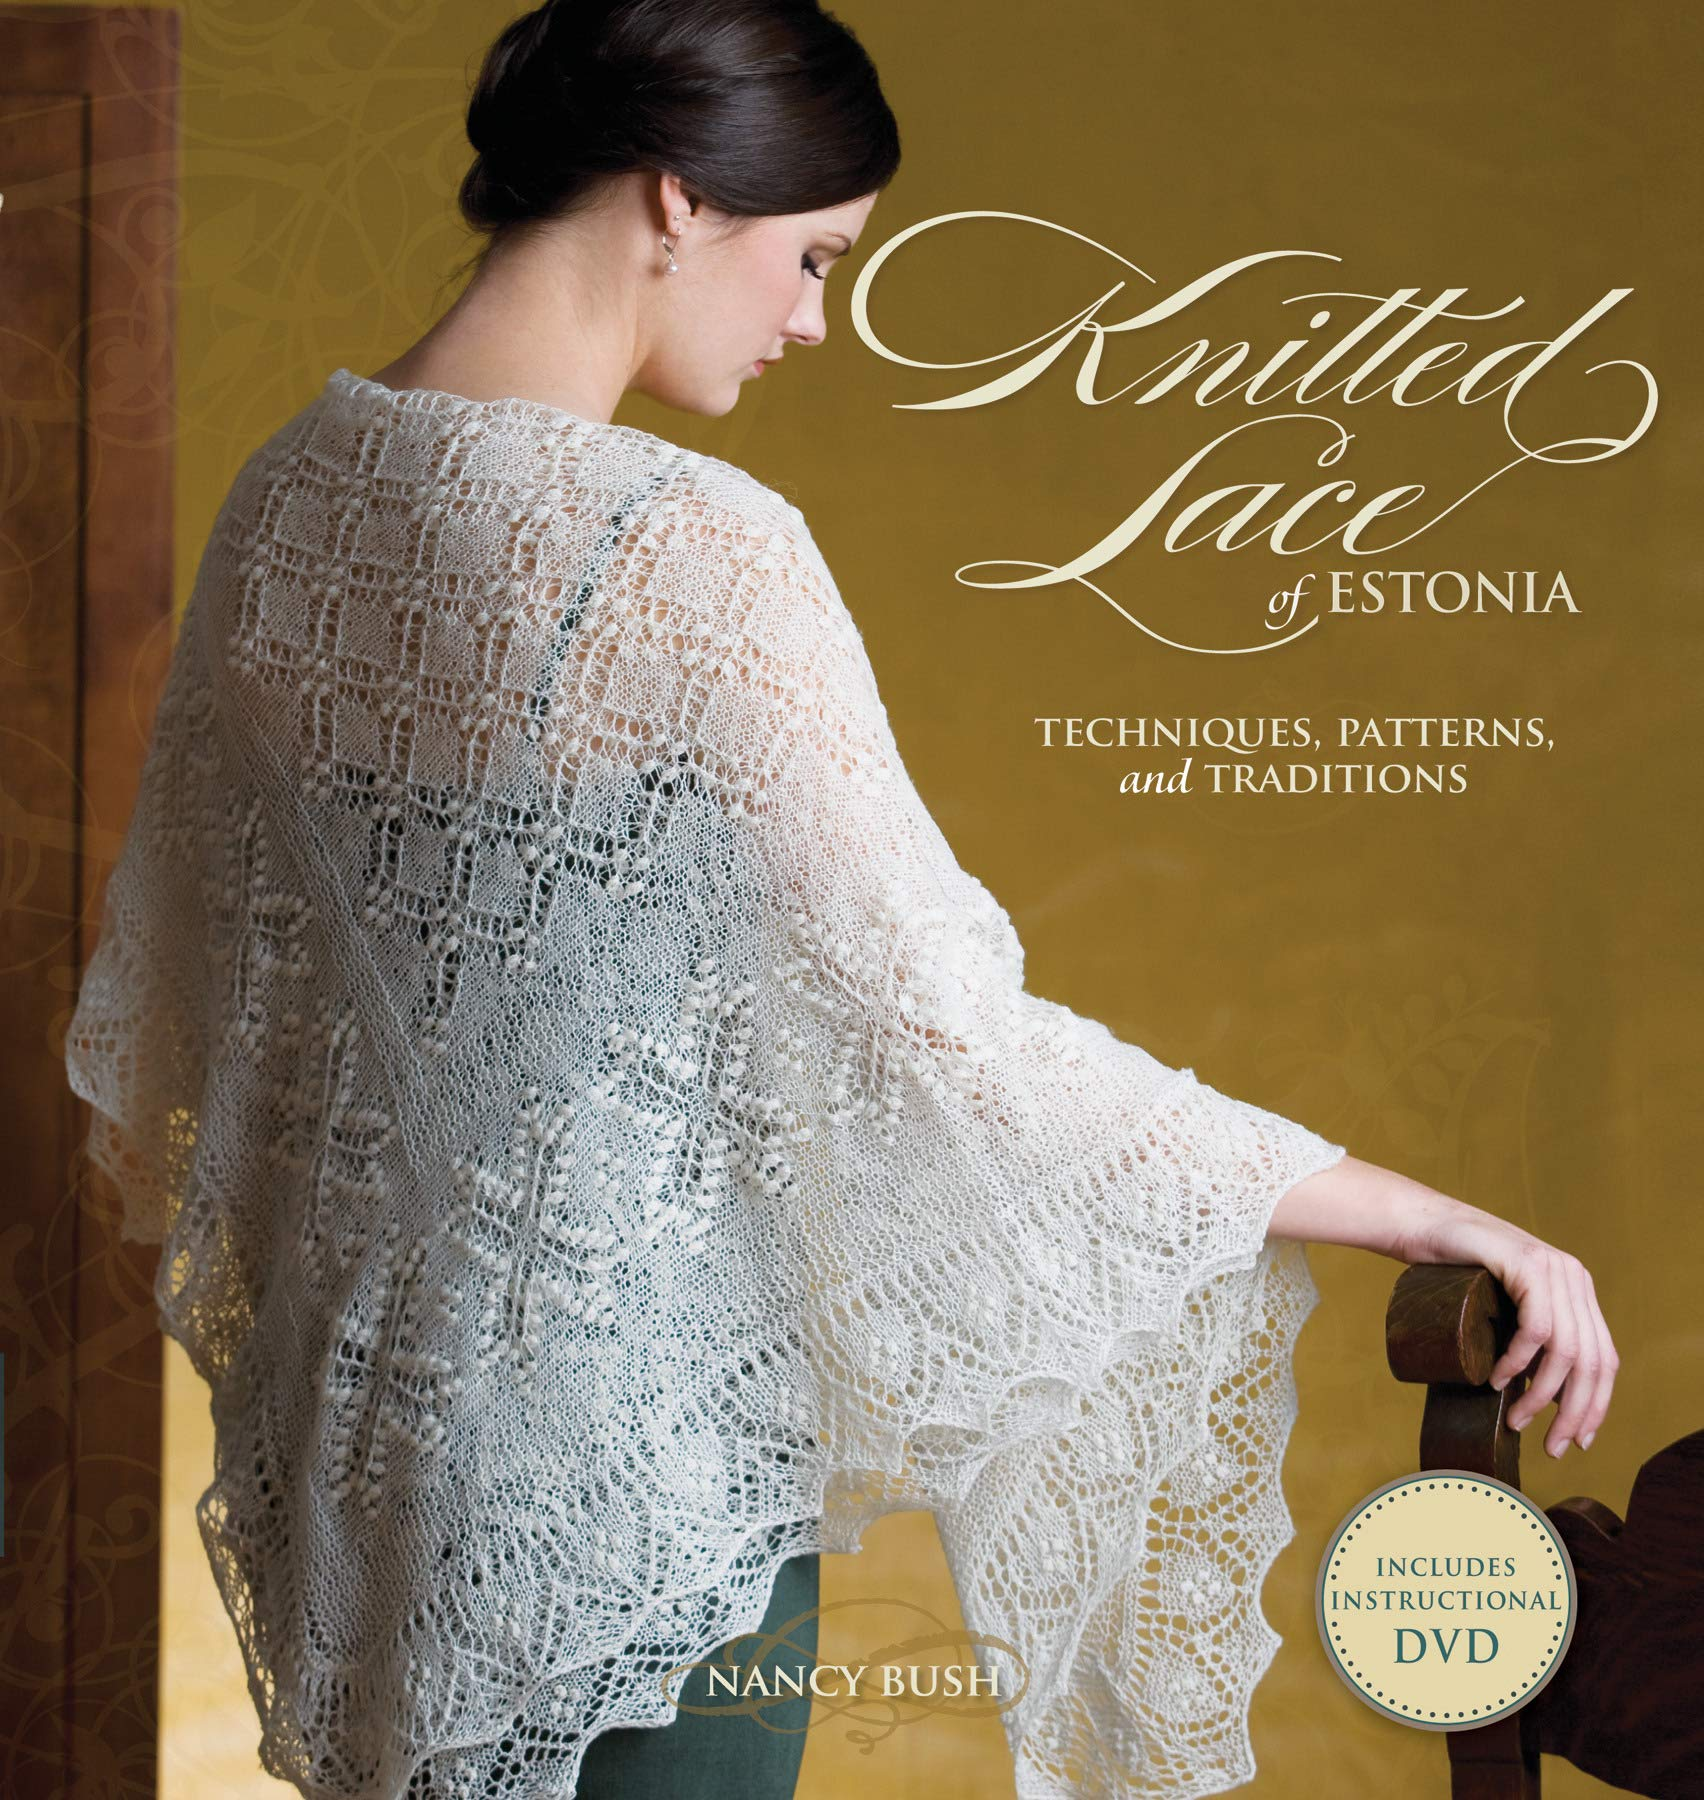 Knitted Lace Of Estonia